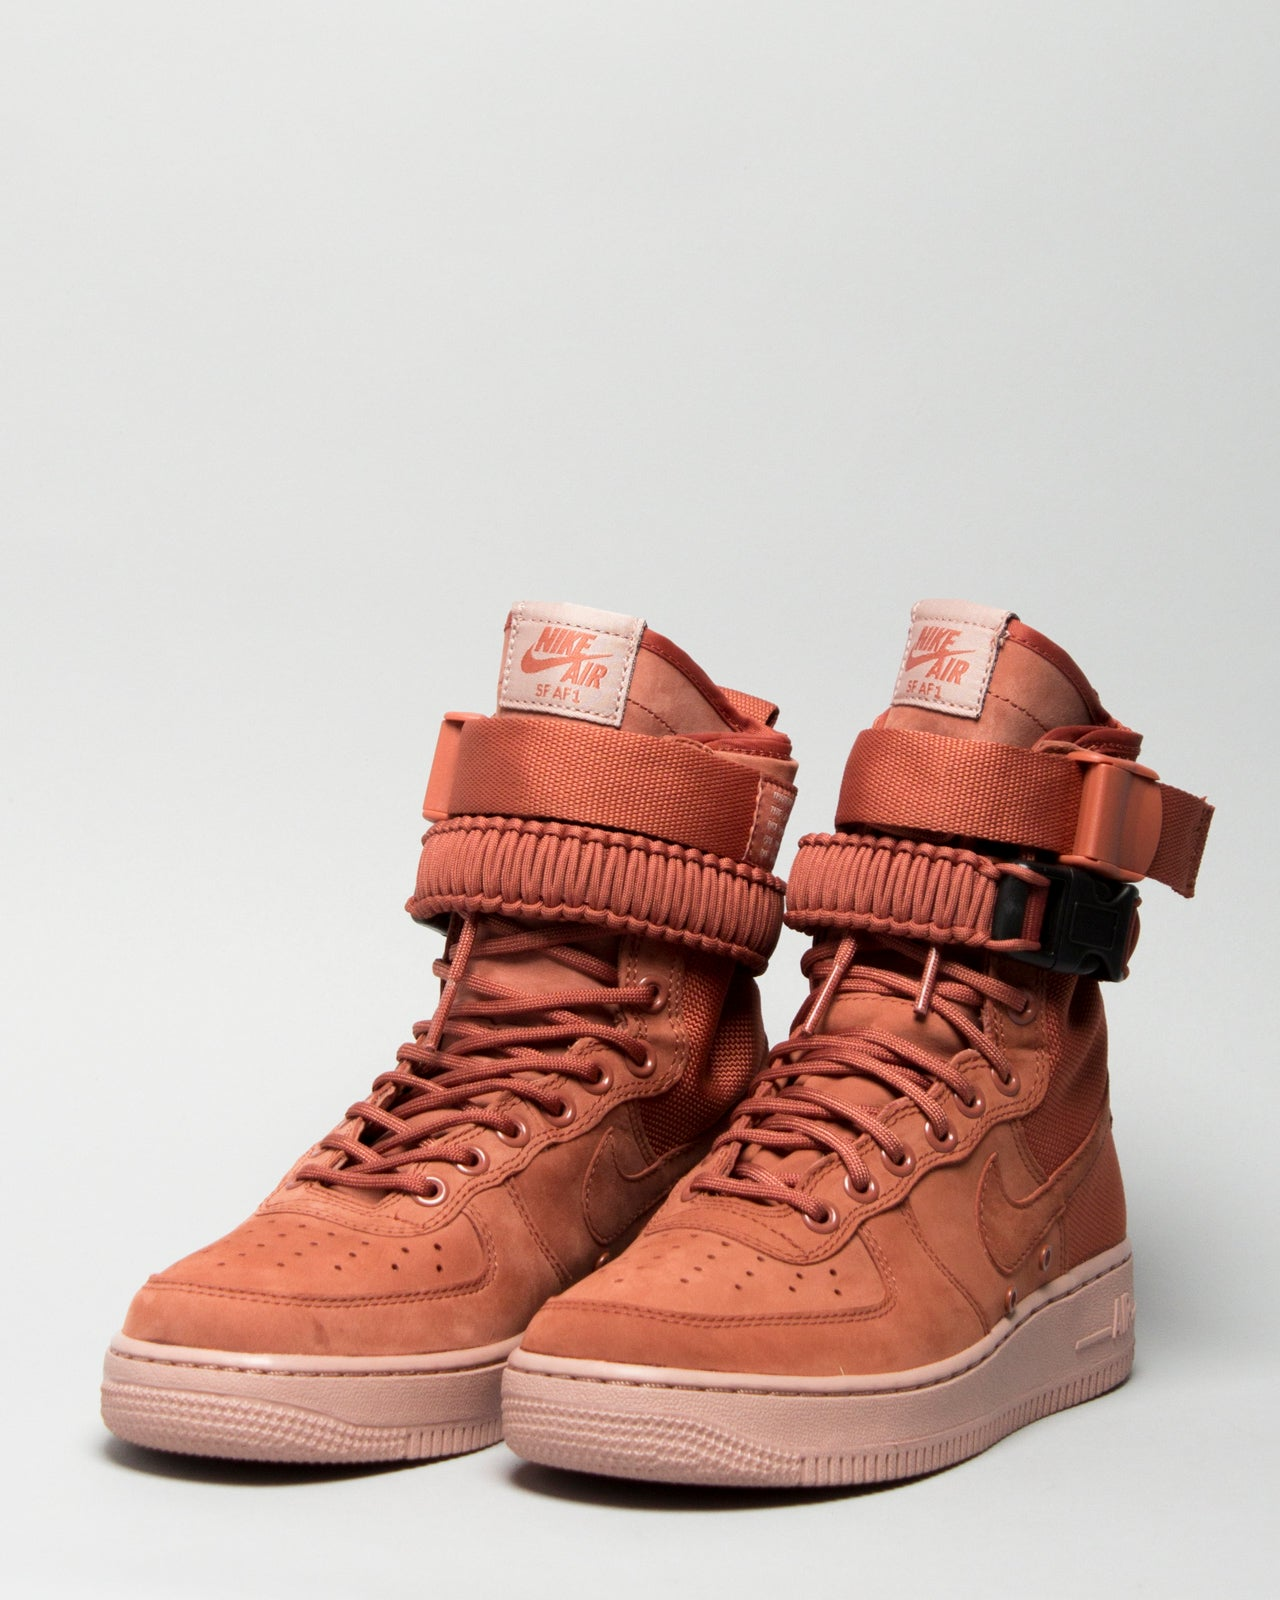 W SF AF1 Dusty Peach/Dusty Peach